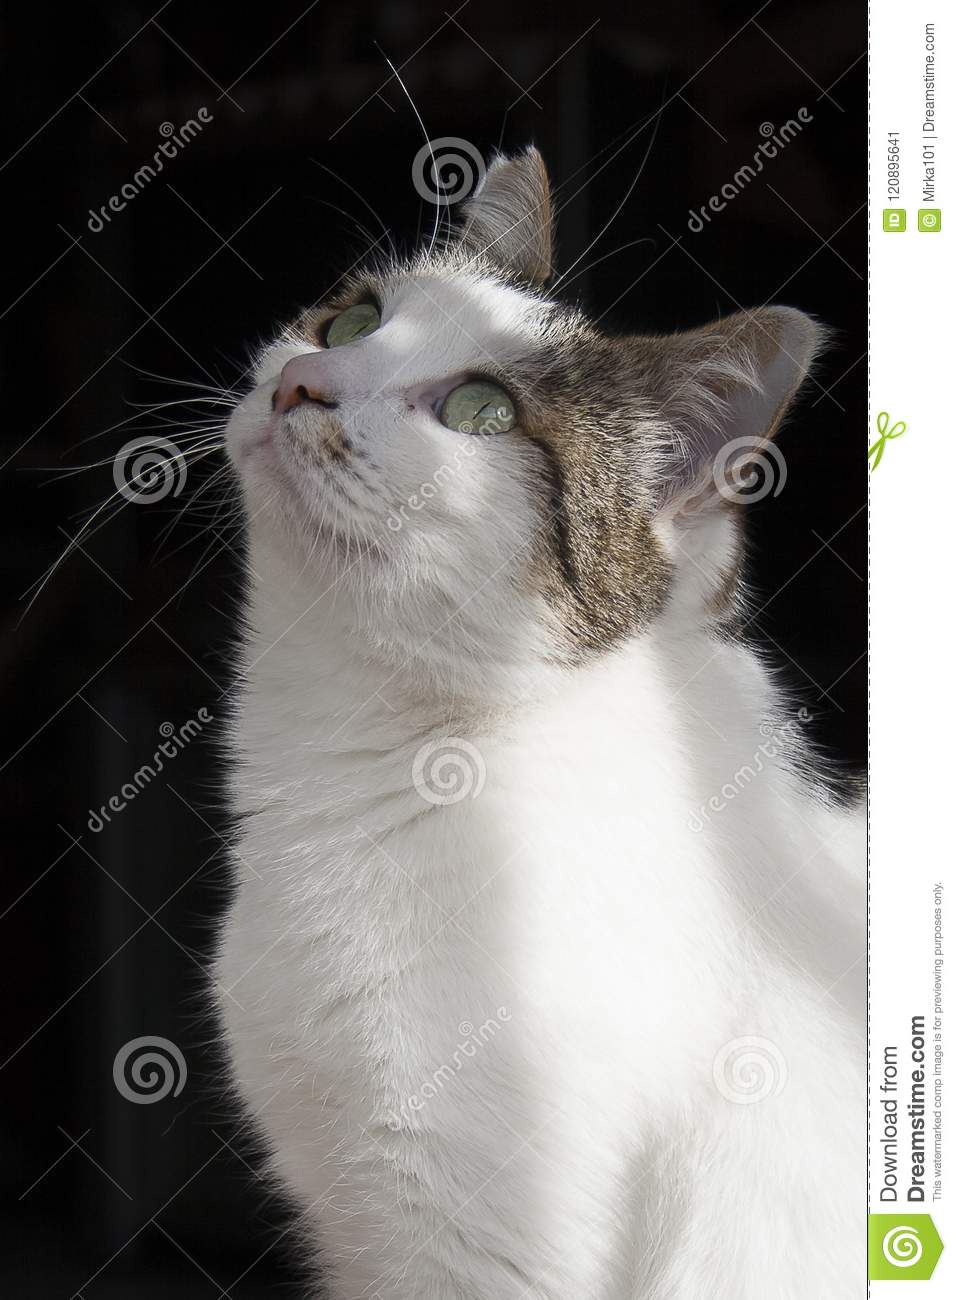 Cute White Cat, Wallpaper On A Dark Background Stock Image - Image ...